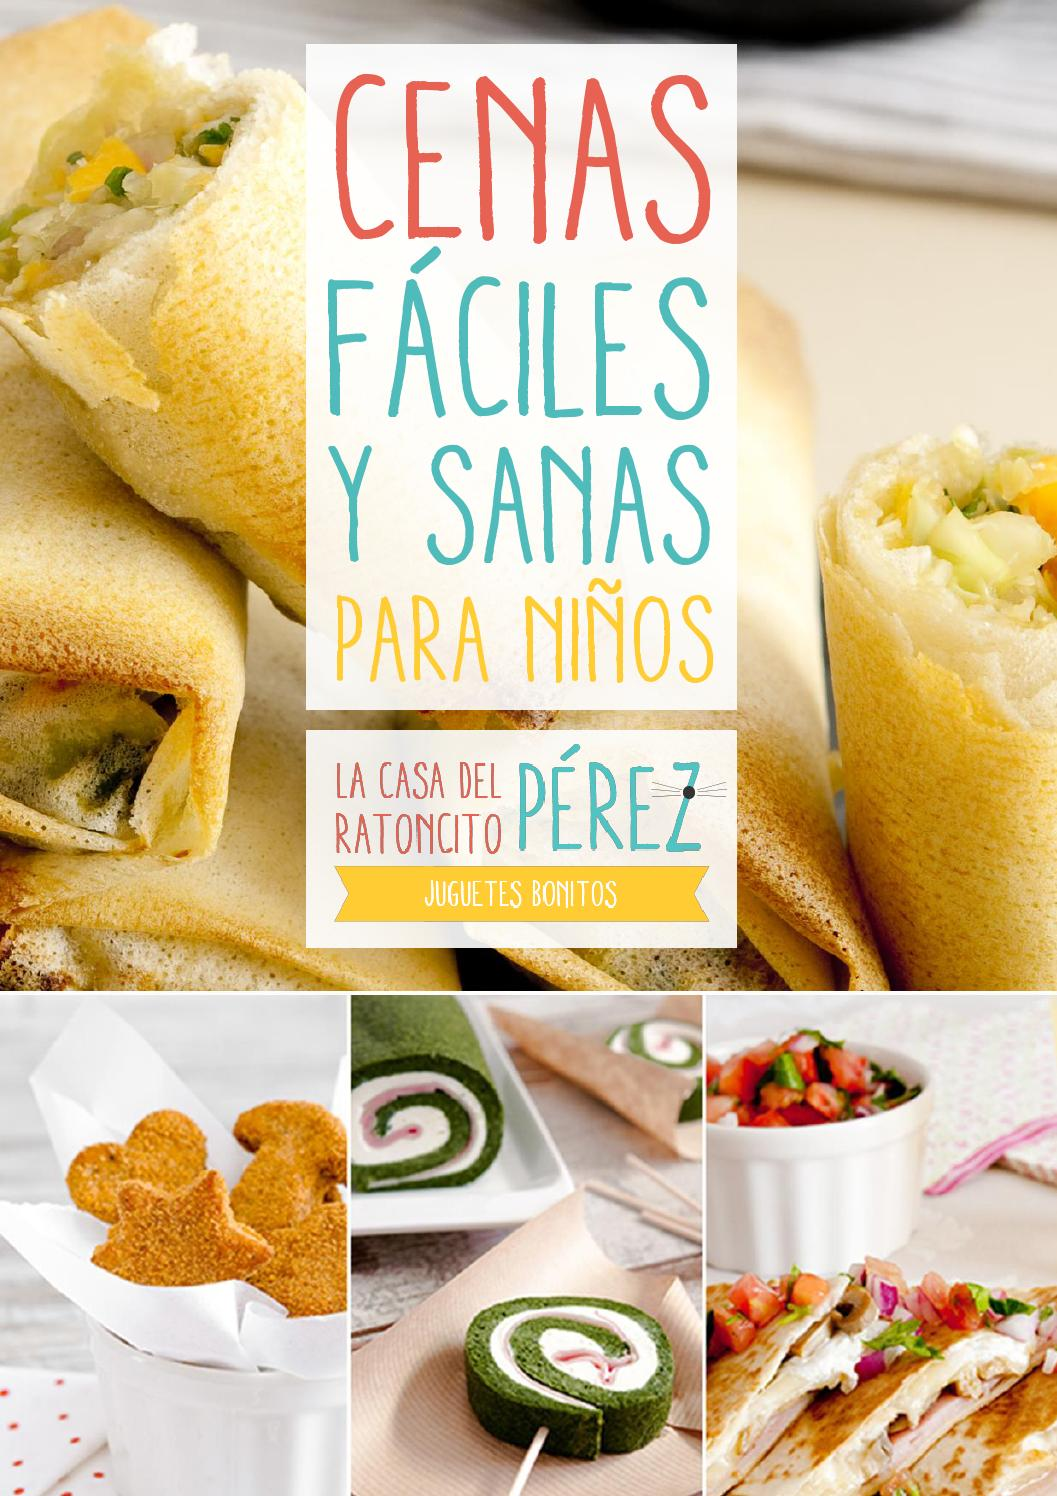 Cenas faciles y sanas para ninos by karina martinez issuu for Comidas faciles y saludables